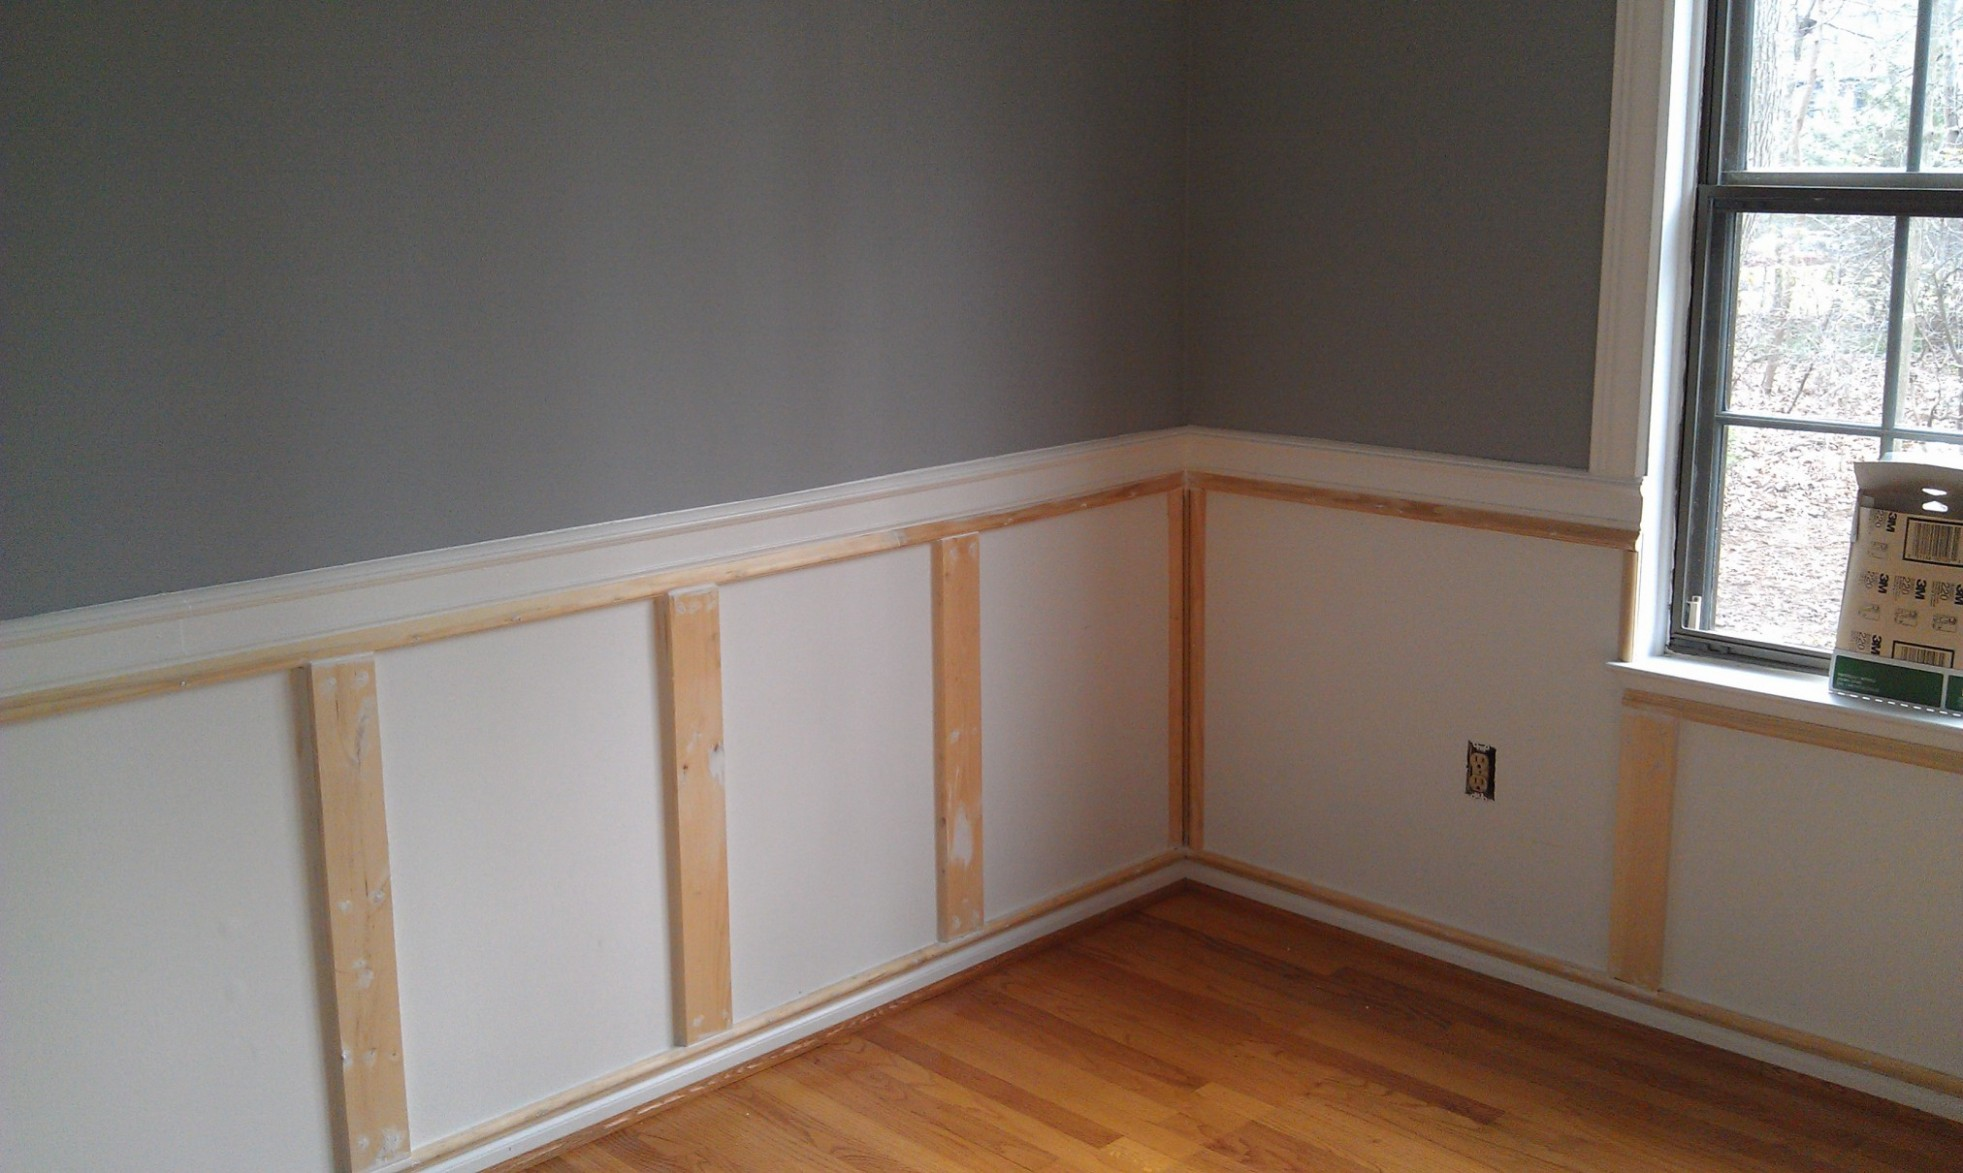 Wainscoting ideas for dining room - large and beautiful photos  - Dining Room Ideas With Wainscoting